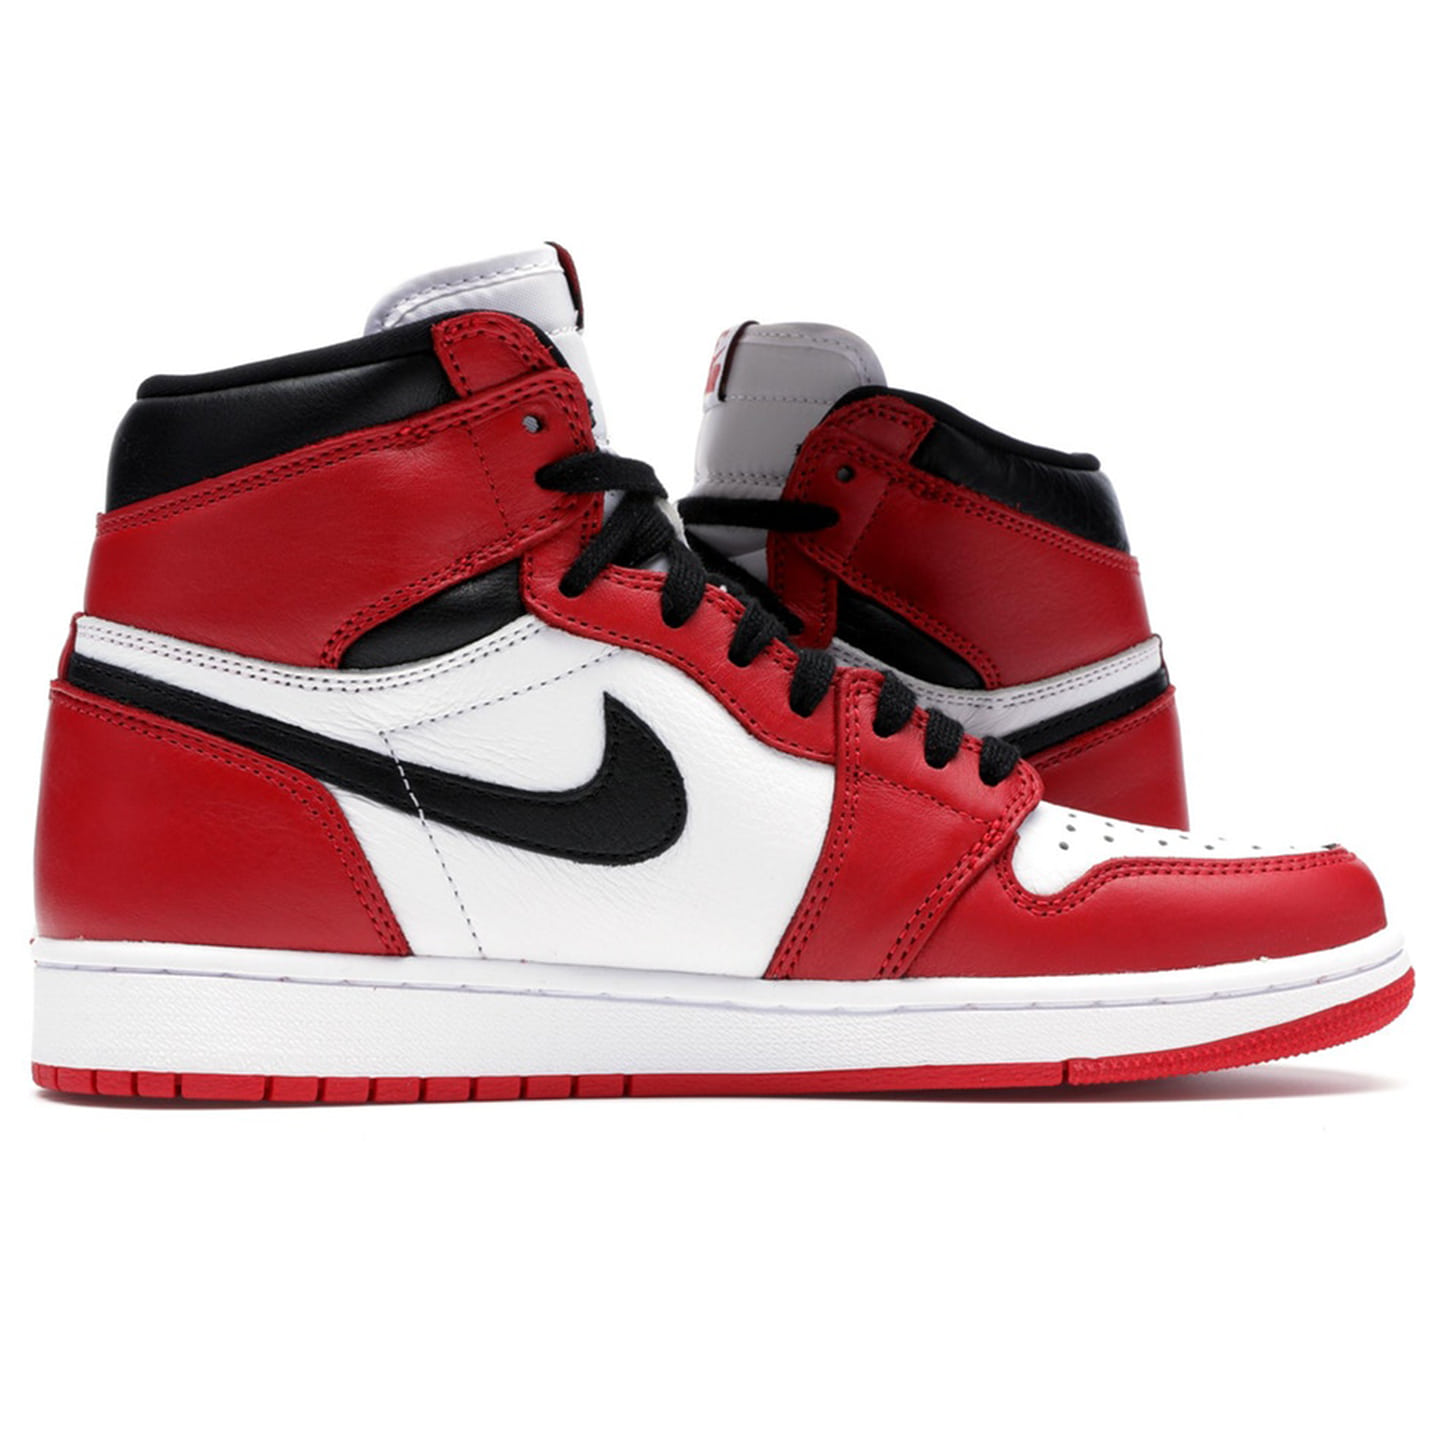 [해외] 나이키 에어조던 1 NRG 호머지 투 홈 Air Jordan 1 Retro High OG NRG Homage to Home 230-250 285-300 861428-061